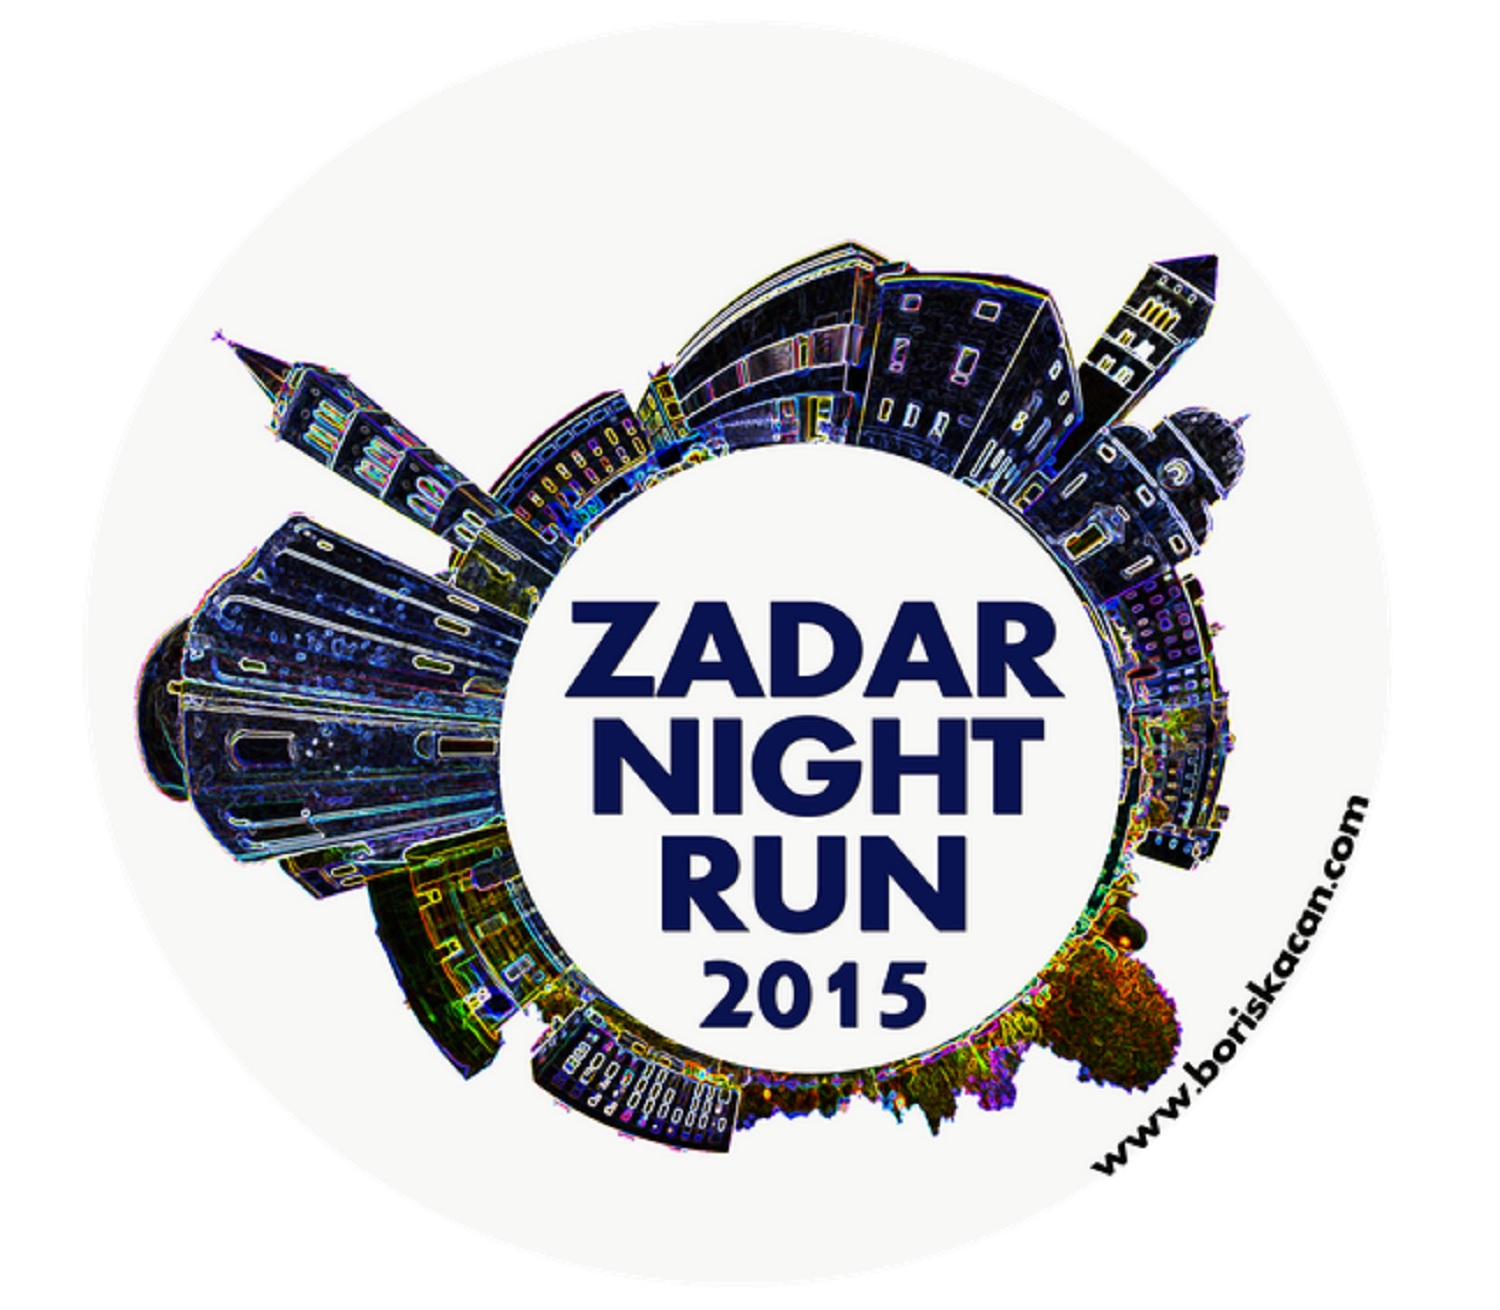 zadar night run 2015 � tr�anjehr